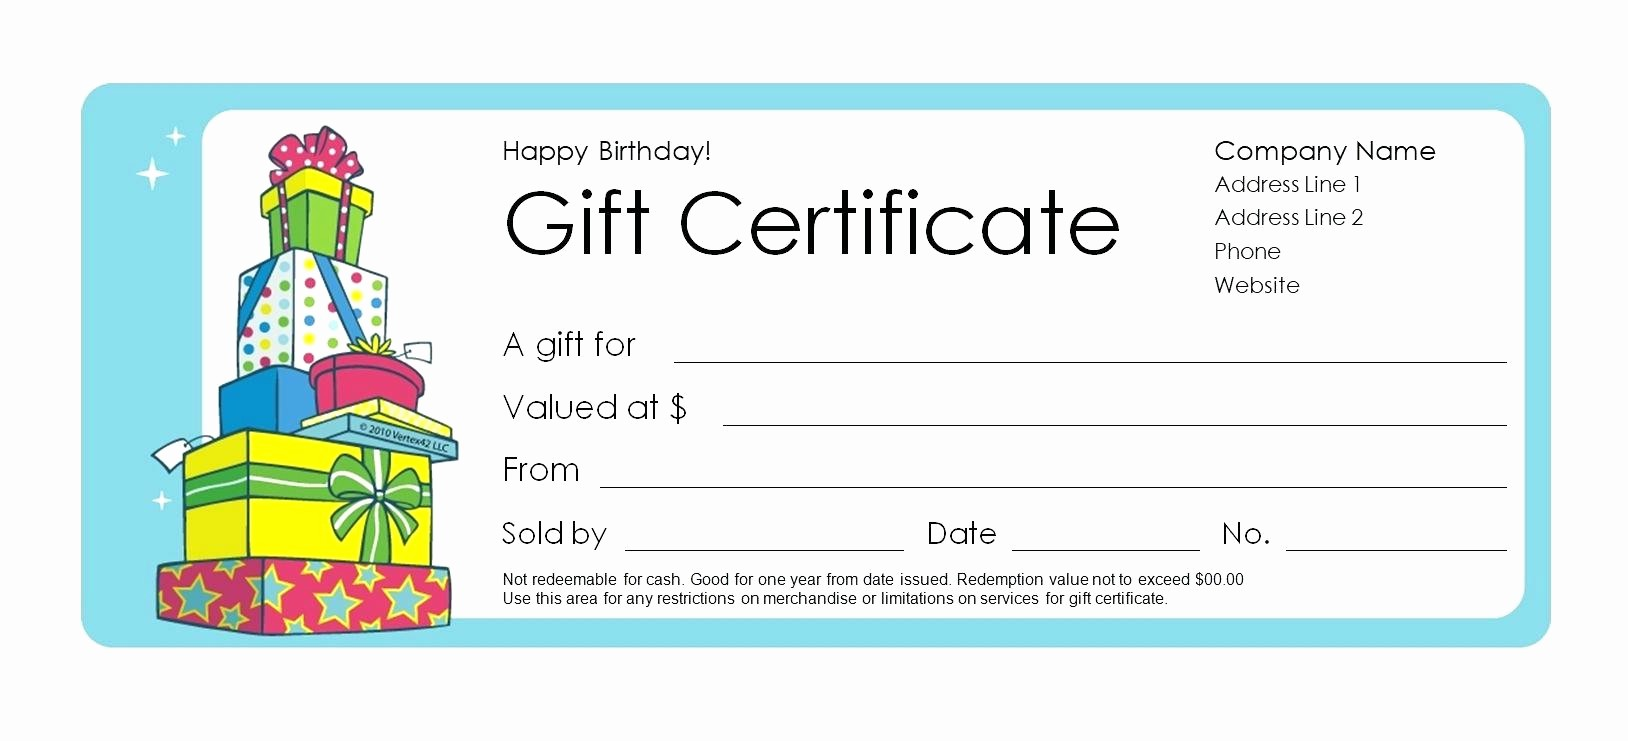 Microsoft Word Certificate Template Free Inspirational Template Microsoft Word Gift Certificate Template